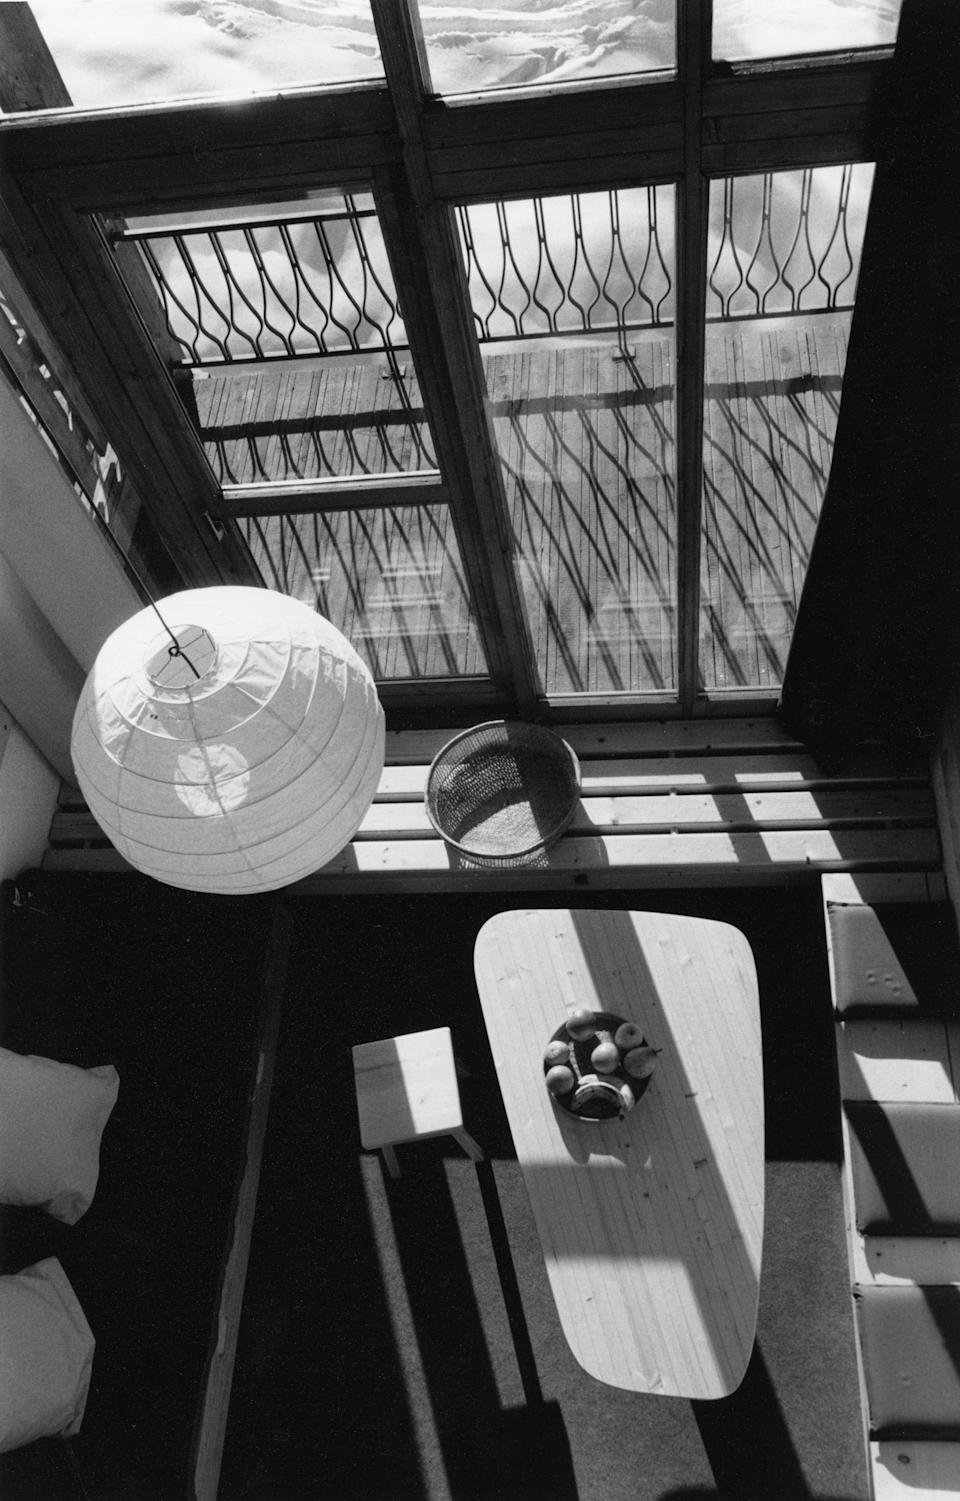 Charlotte Perriand, Aiguille Grive residence in Les Arcs, 1800, 1986-89.  Perenette Perriand-Barsac (AChP/ADAGP, Paris and DACS, London 2021)